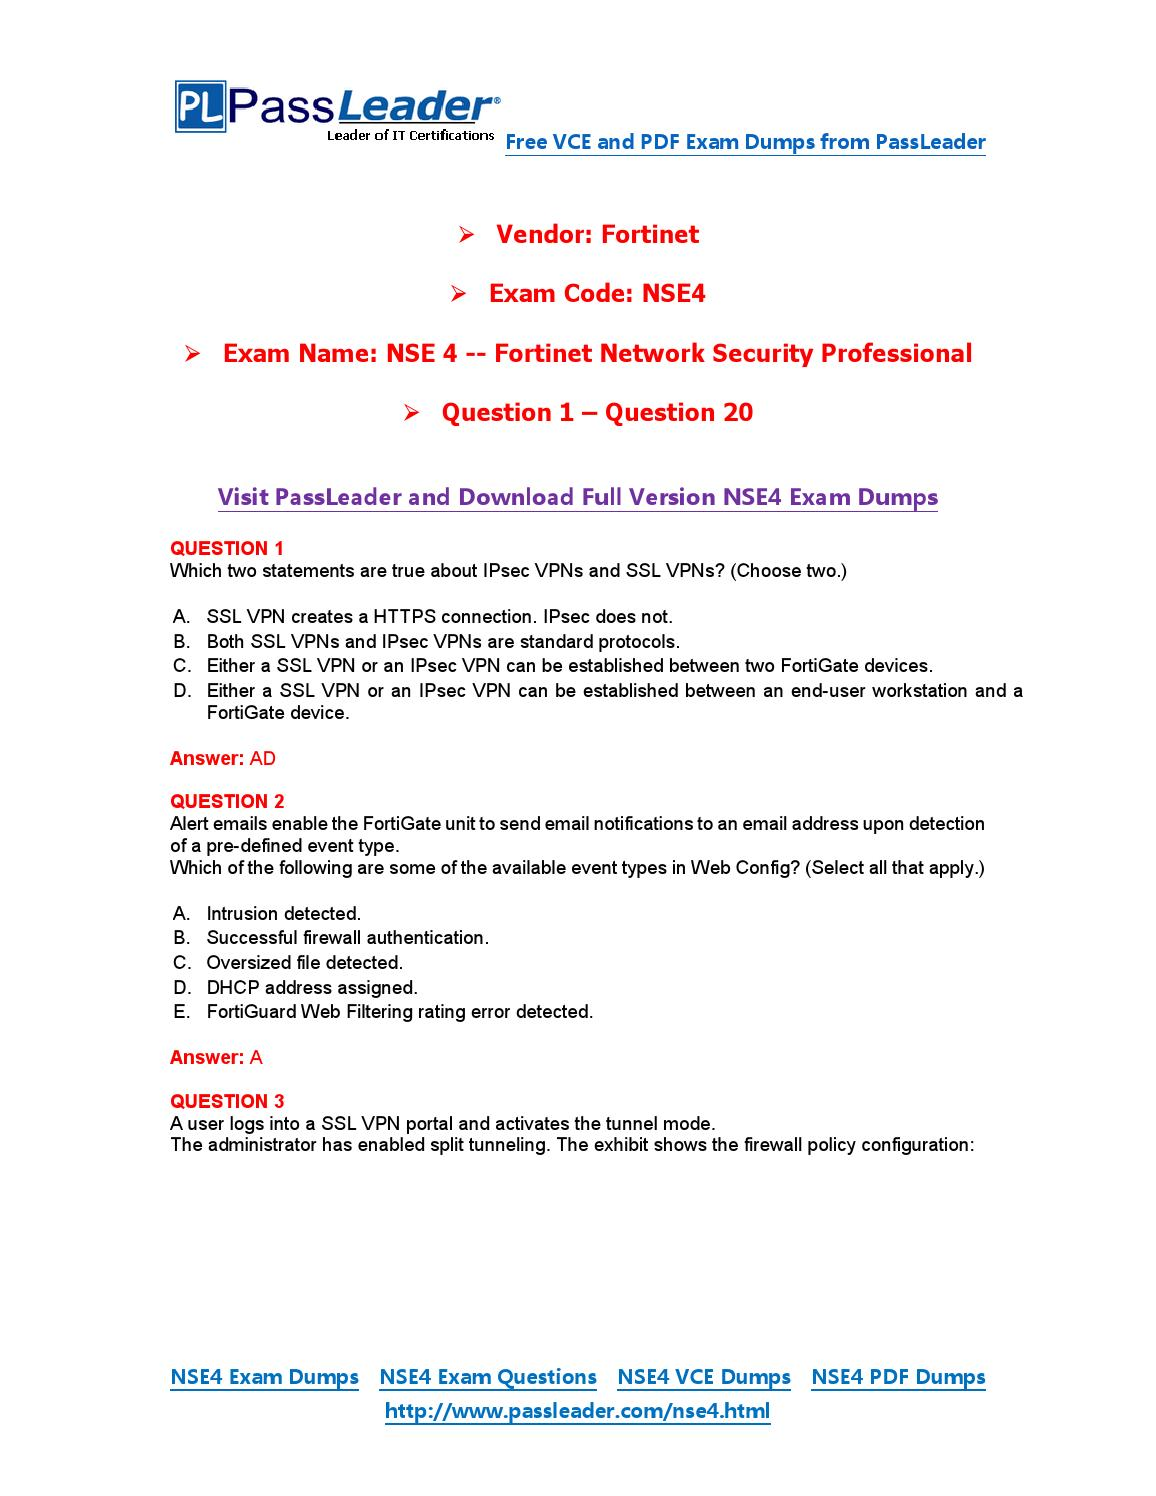 2016 New NSE4 Exam Dumps For Free (VCE and PDF) (1-20) by